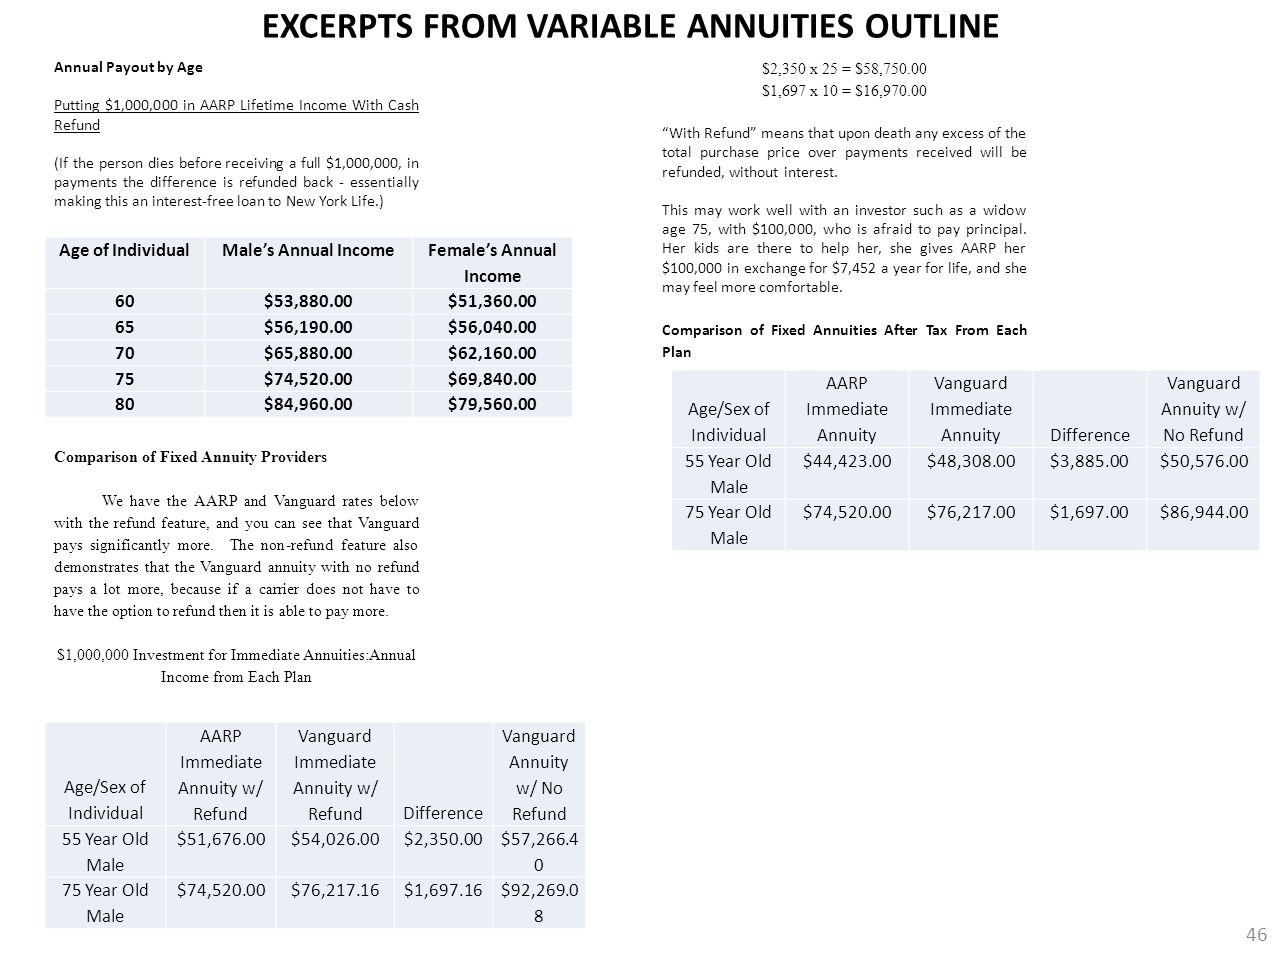 EXCERPTS FROM VARIABLE ANNUITIES OUTLINE Female's Annual Income